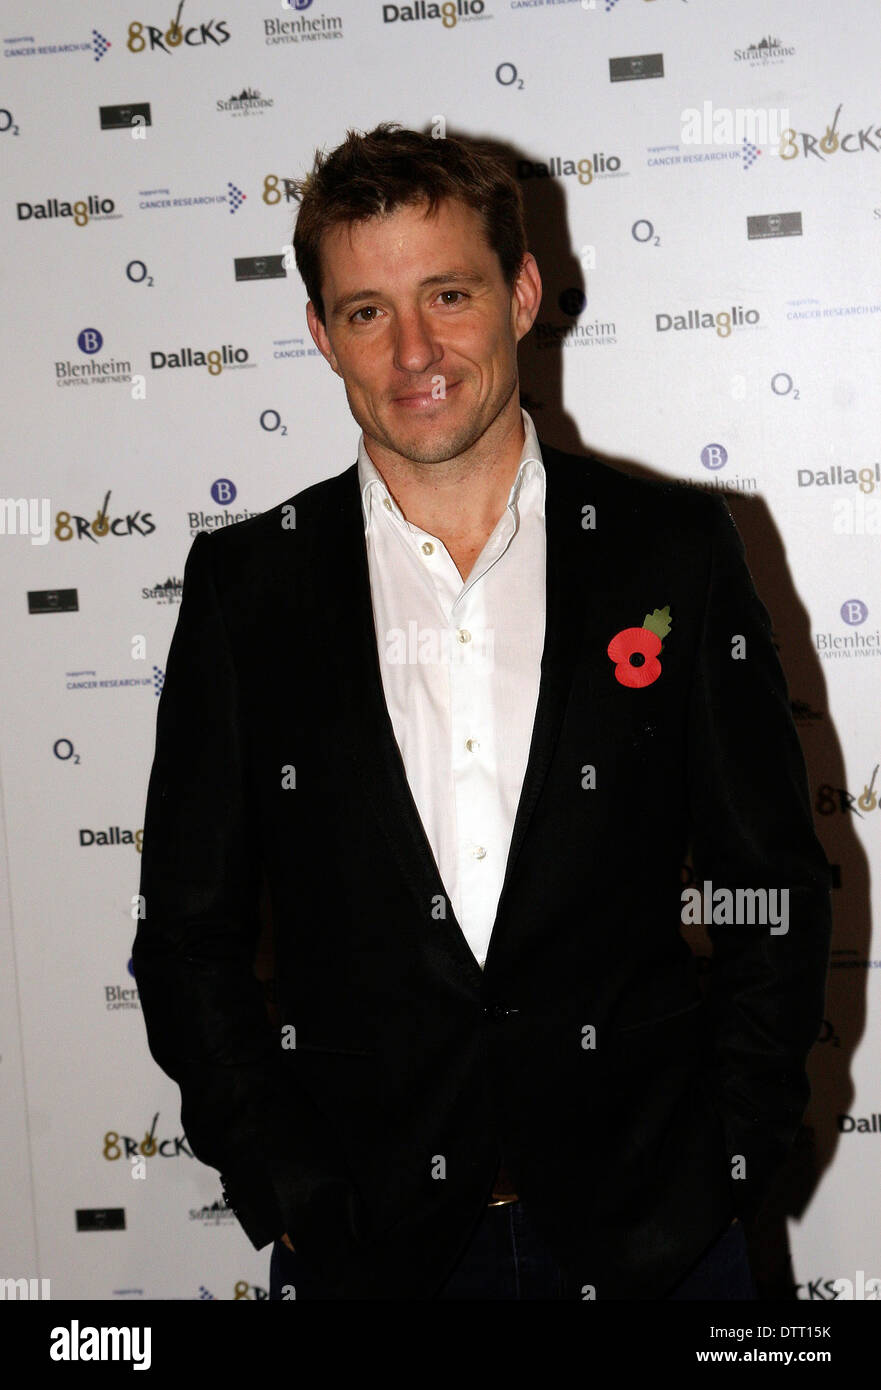 TV presenter Ben Shephard attending the Cancer Research Charity event in London - Stock Image